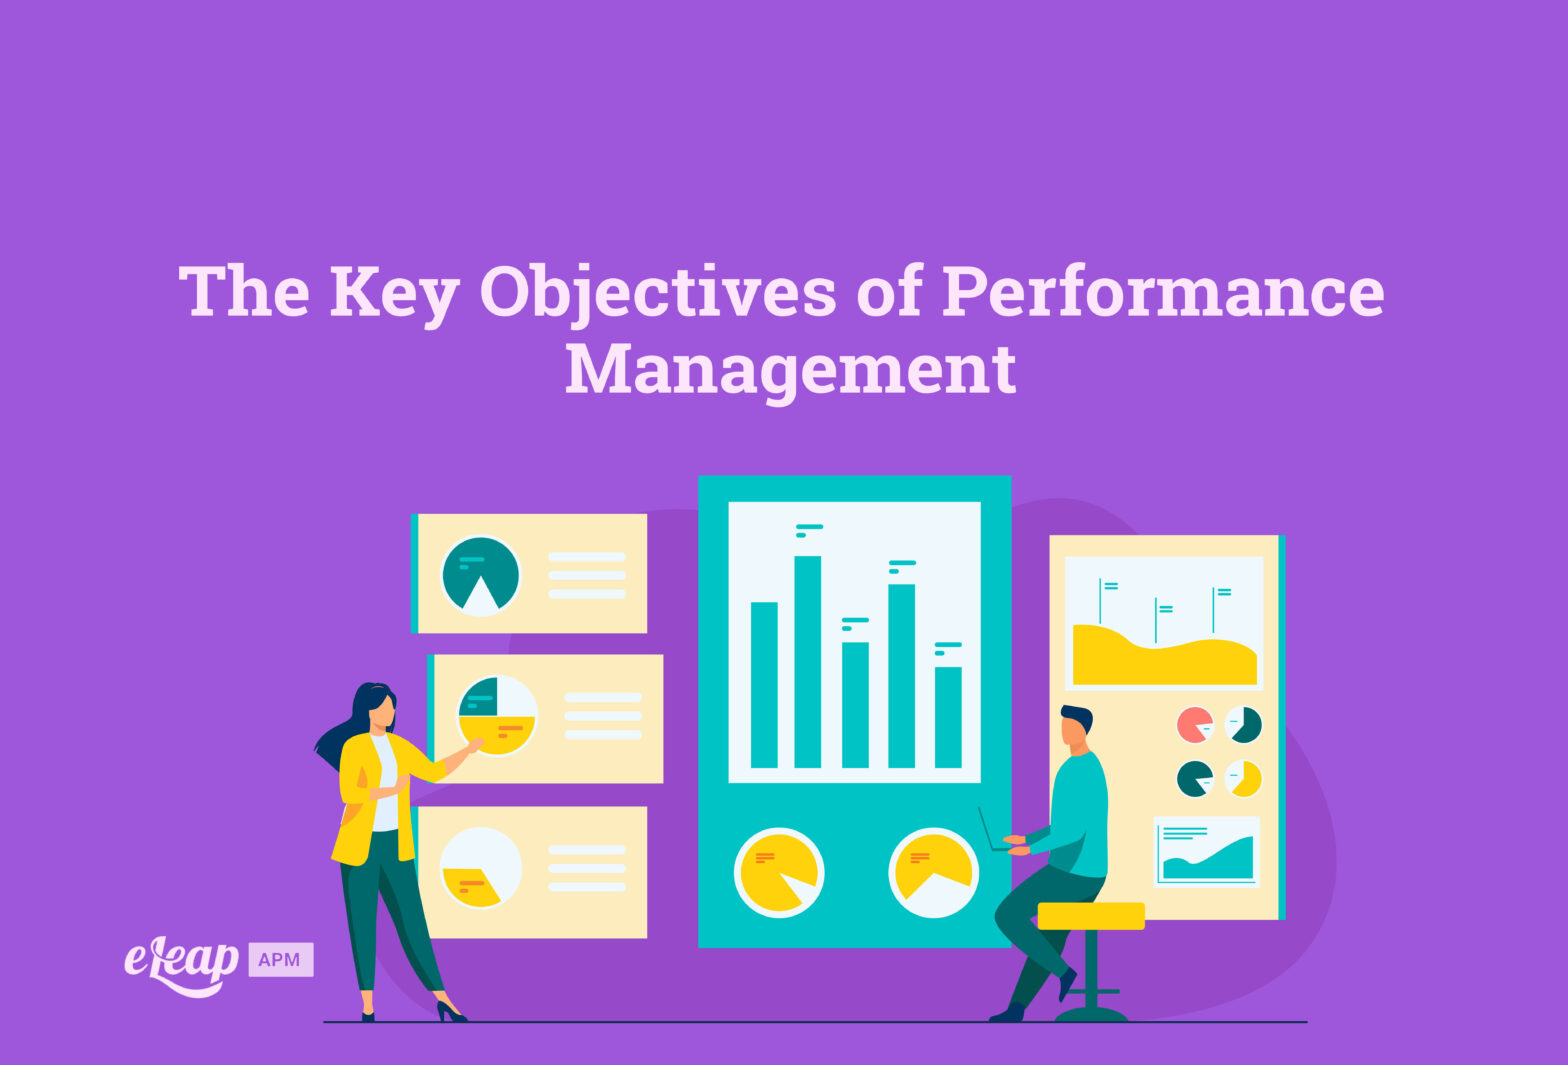 The Key Objectives of Performance Management